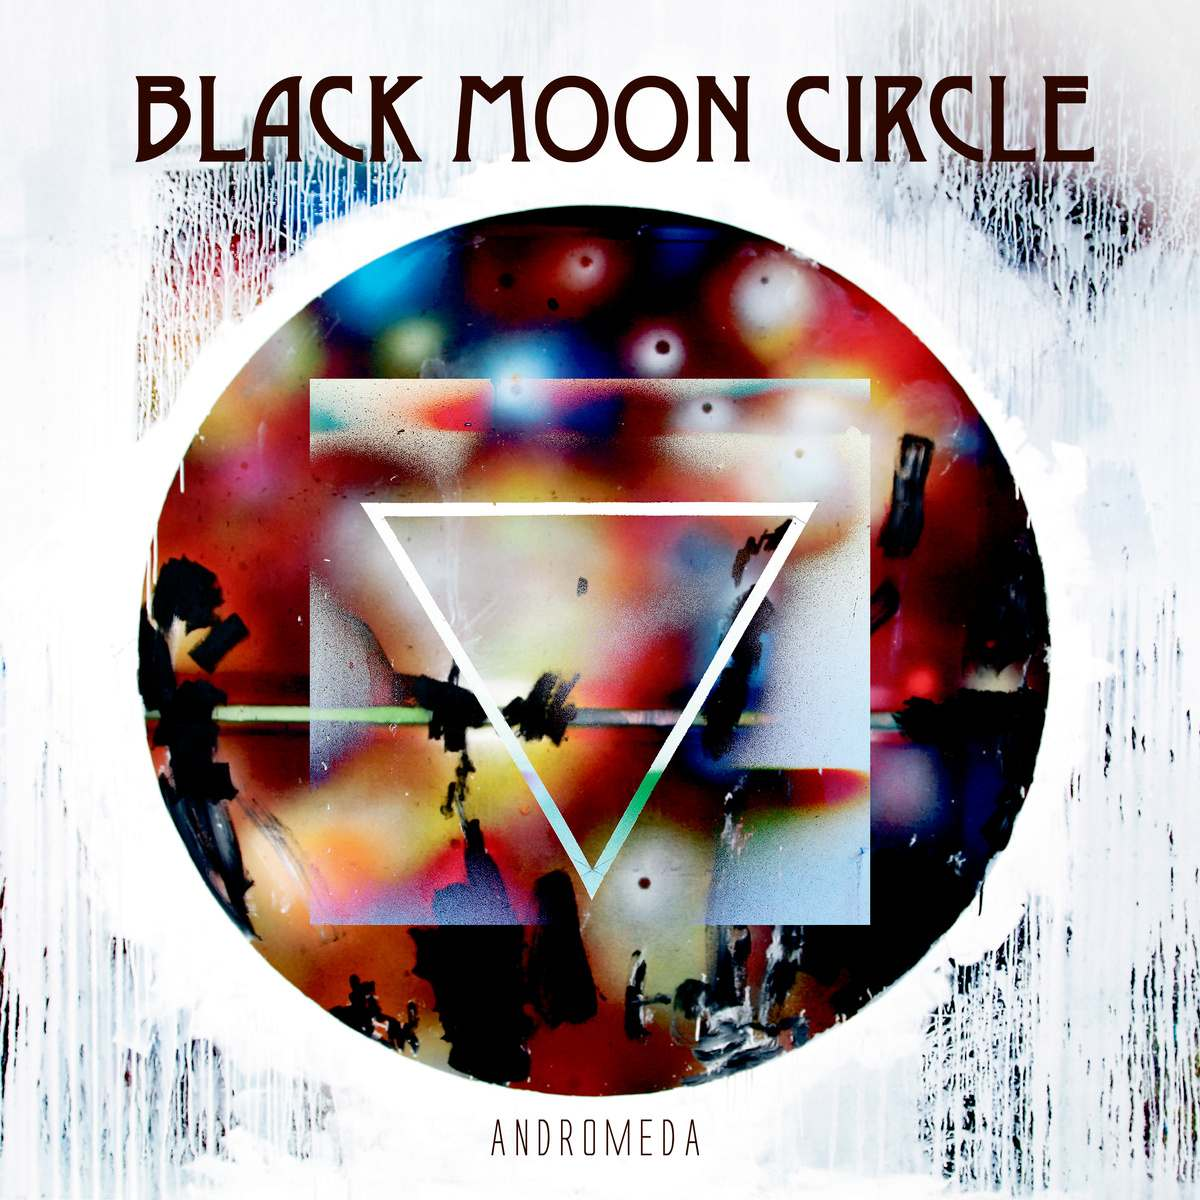 Black Moon Circle Andromeda